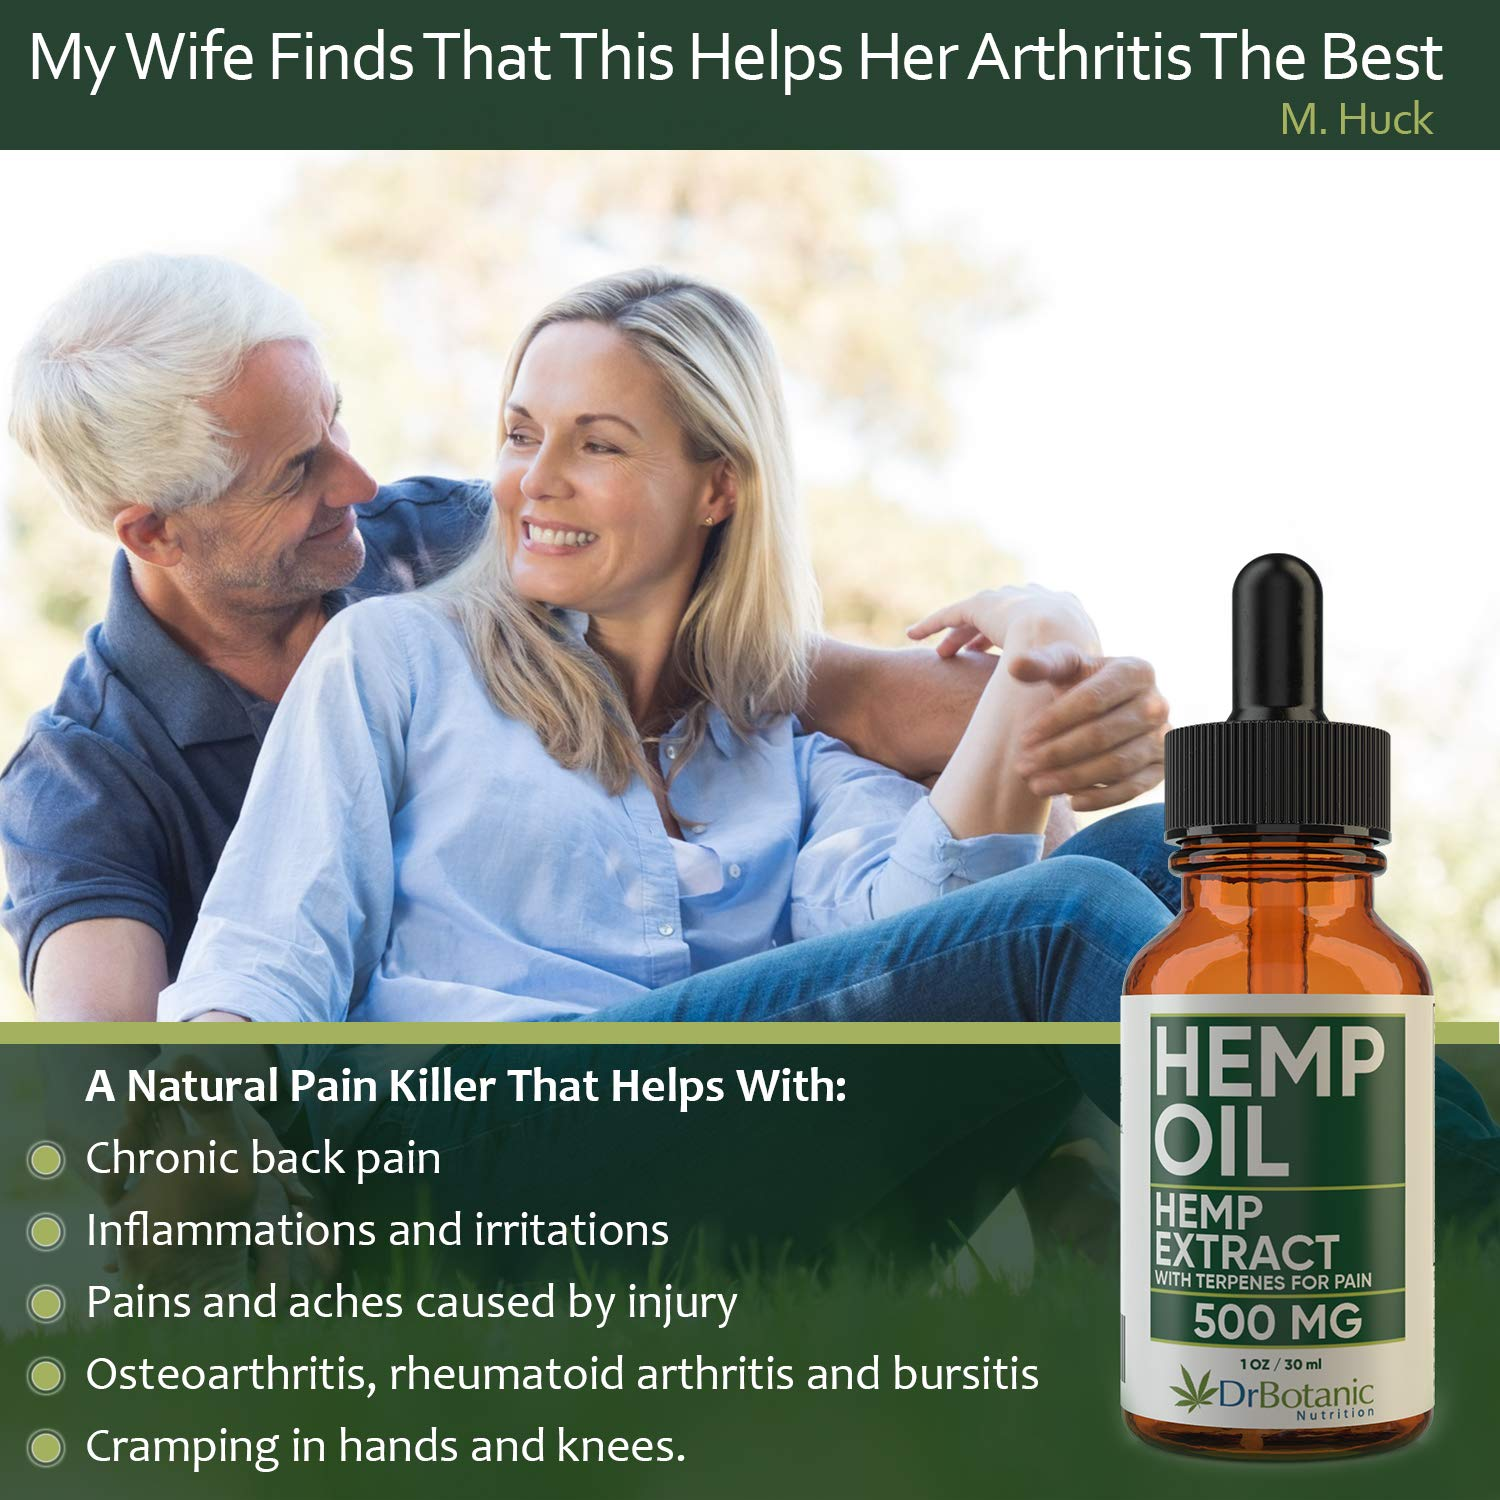 Hemp Oil with 500 mg Hemp Extract for Pain, Stress and Anxiety Relief   Helps with Sleep, Mood and Skin  Anti Inflammatory and Energy Boost Herbal